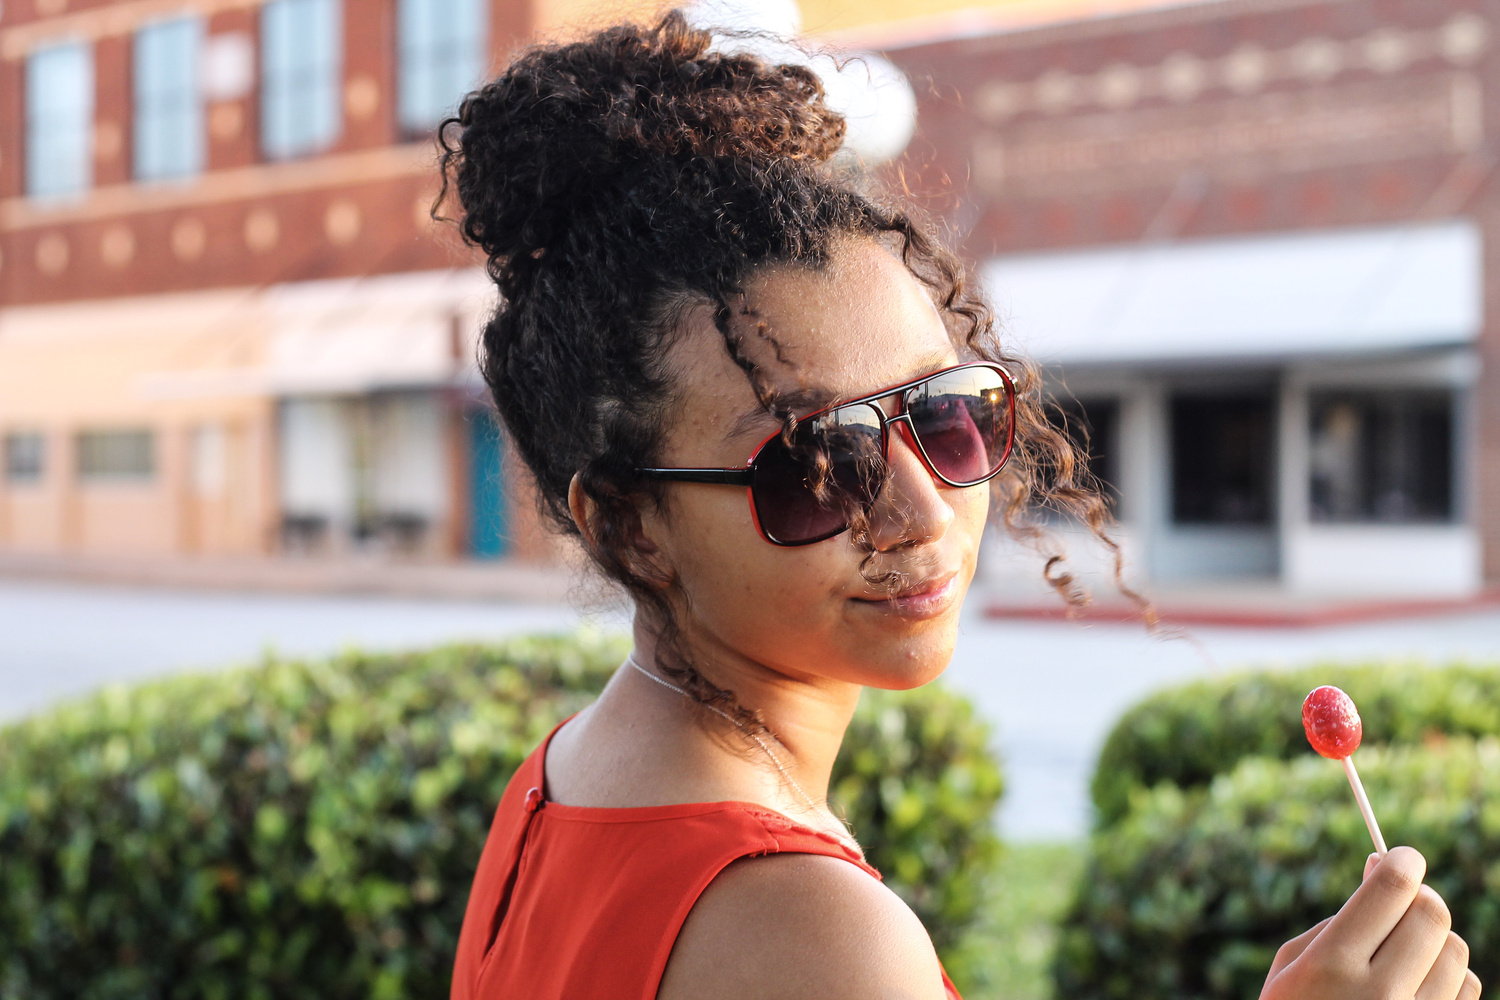 Girl In The Red Sunglasses by Myron Edwards